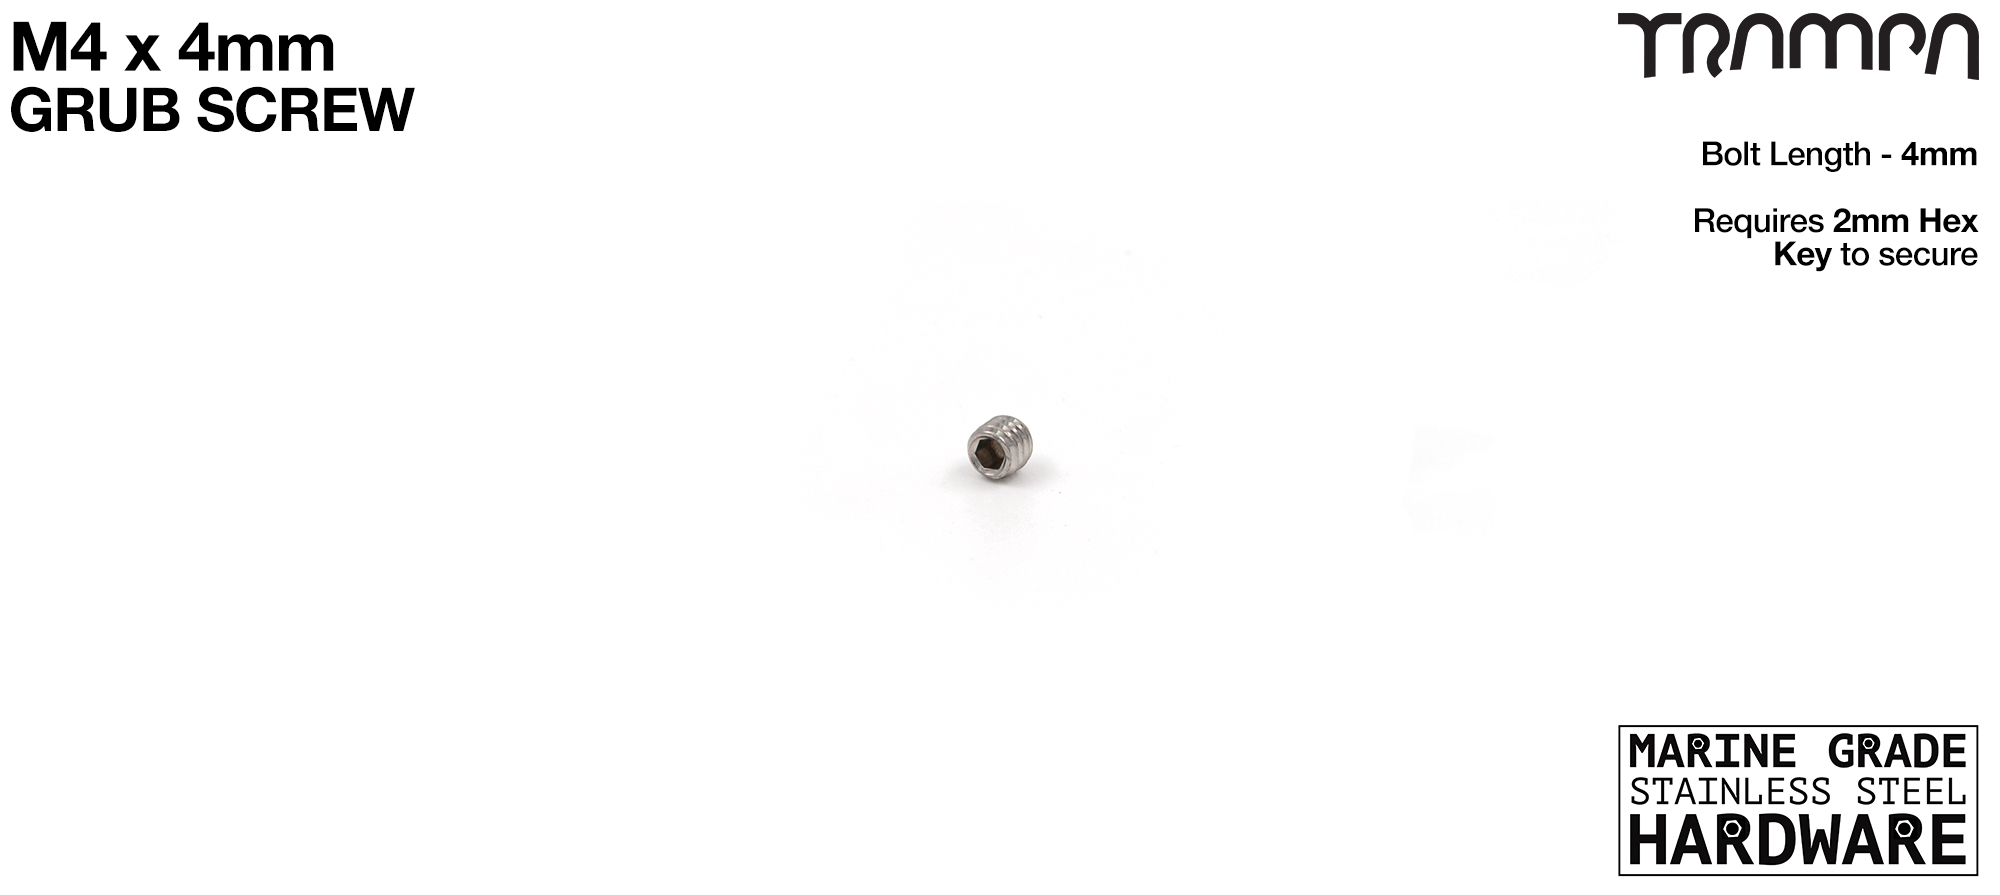 M4 x 4mm Grub Screw M4 x 4mm Motor Pulley Grub Screw - Connects the Motor Pulley onto the Motor Axle Shaft